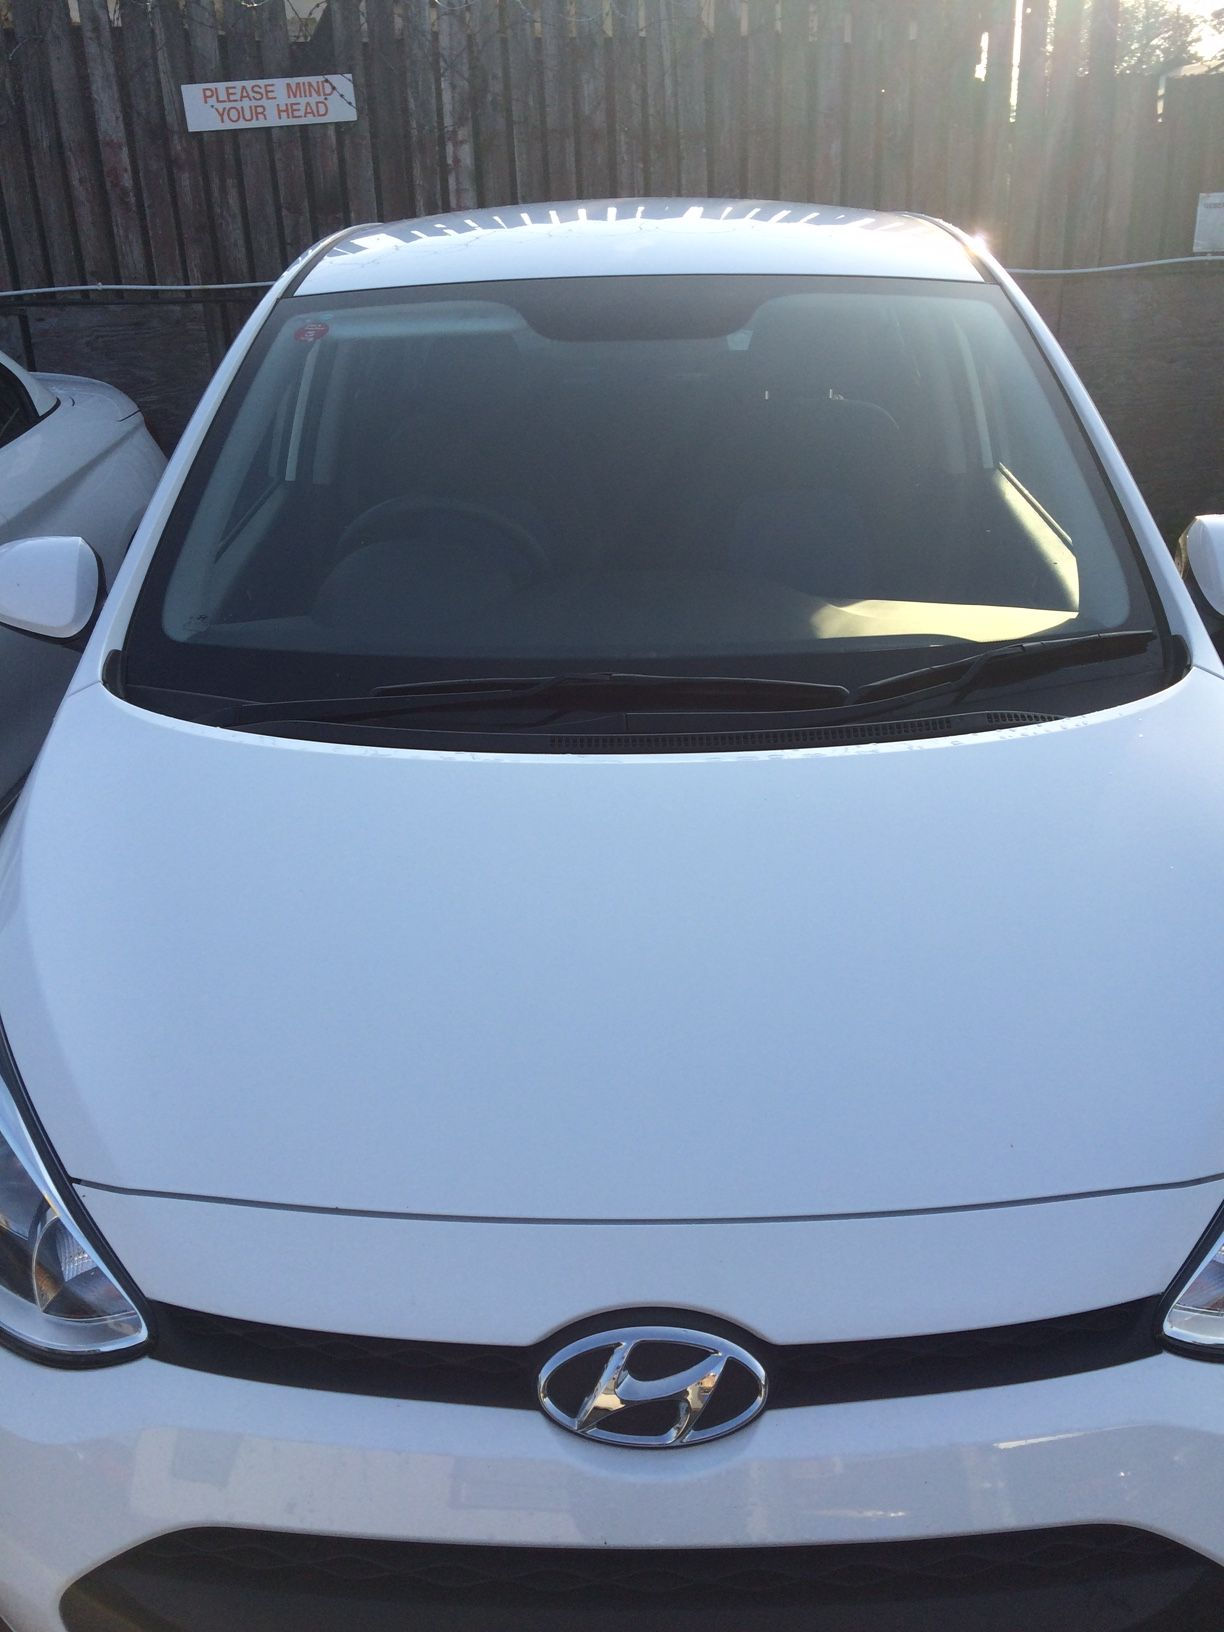 The Hyundai I10 Carleasing Deal One Of The Many Cars And Vans